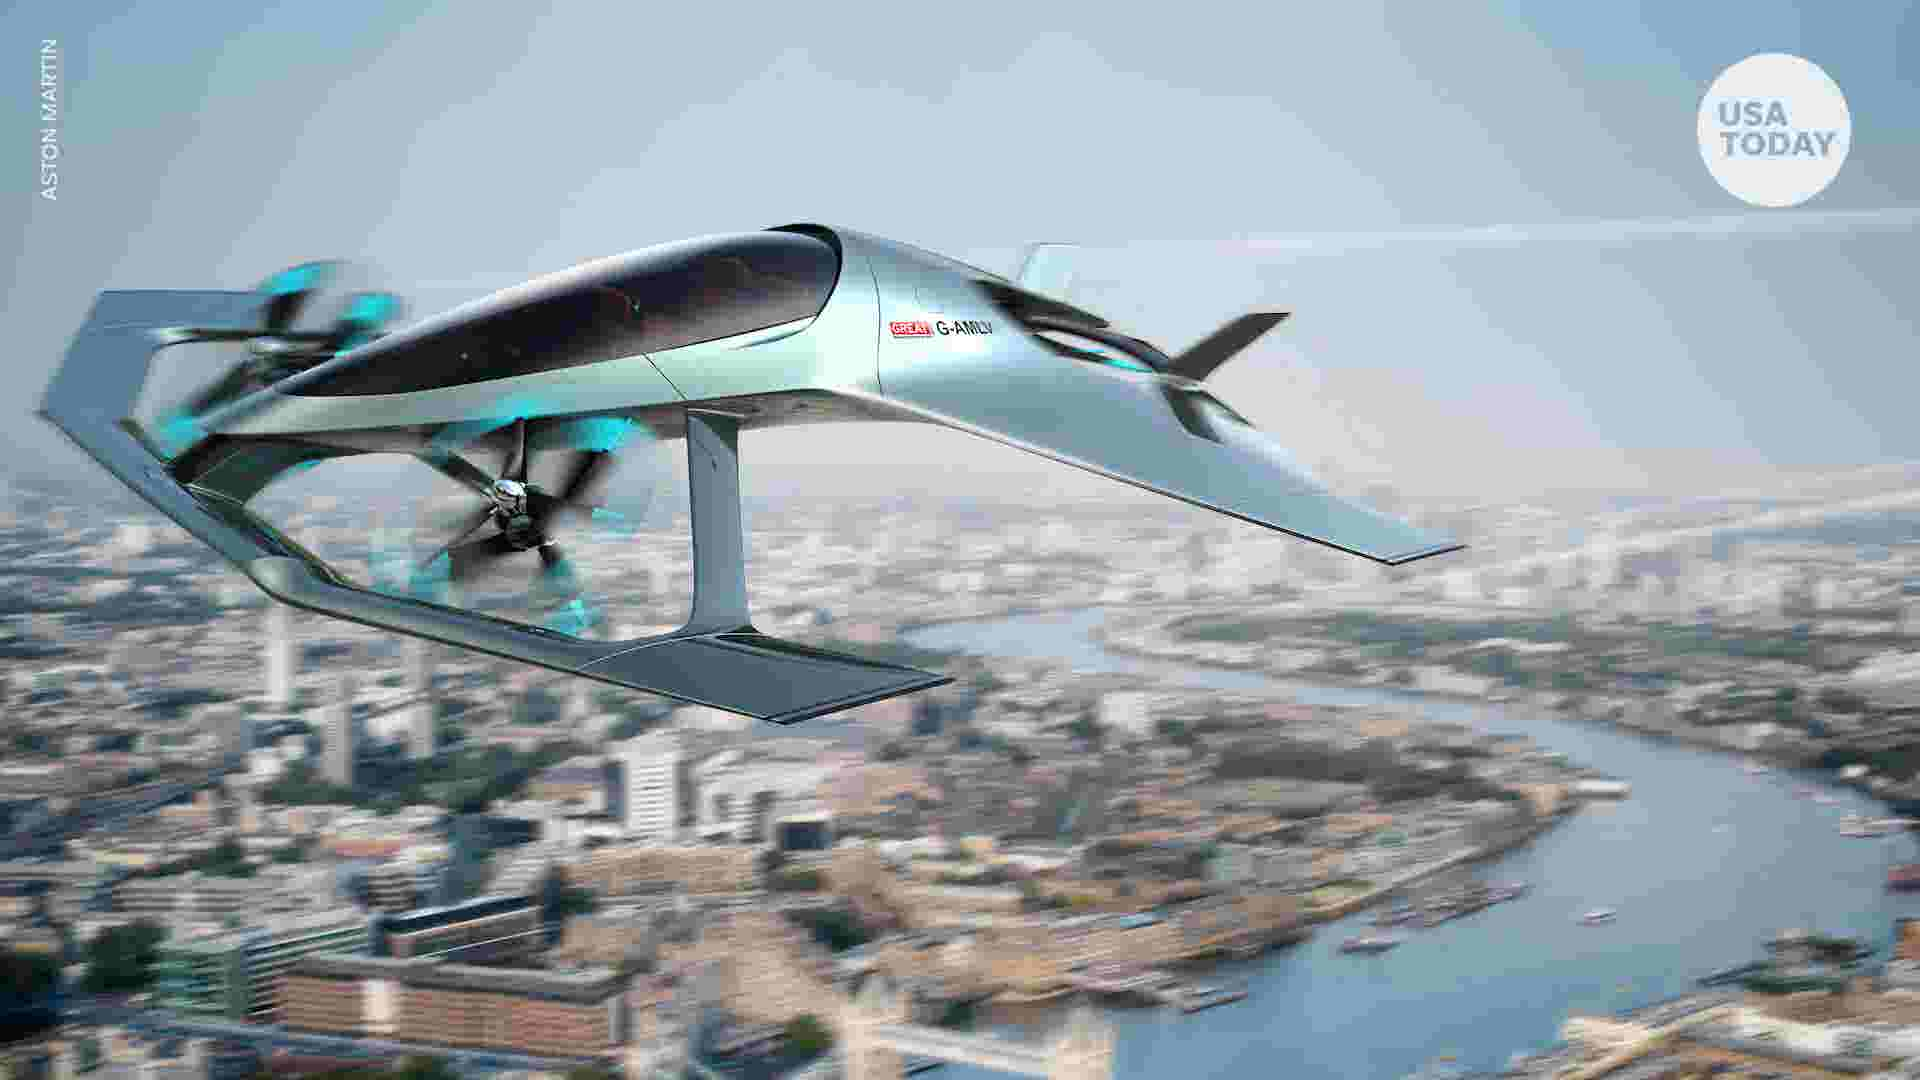 Aston Martin s flying car concept is fit for James Bond